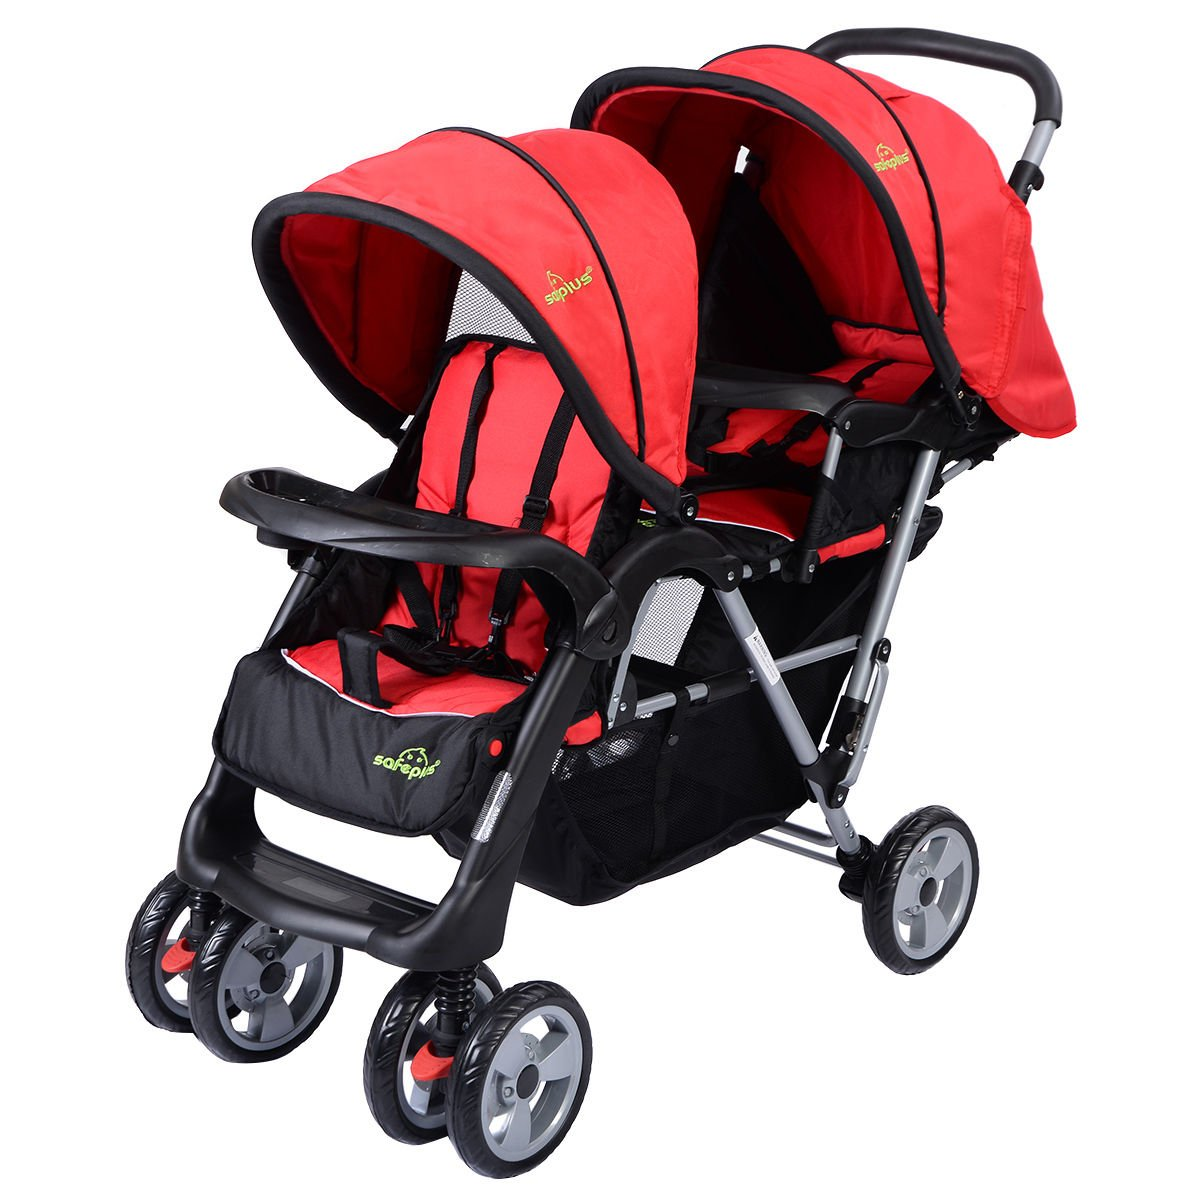 Amazon.com: Plegable individual Baby carriola de bebé doble ...